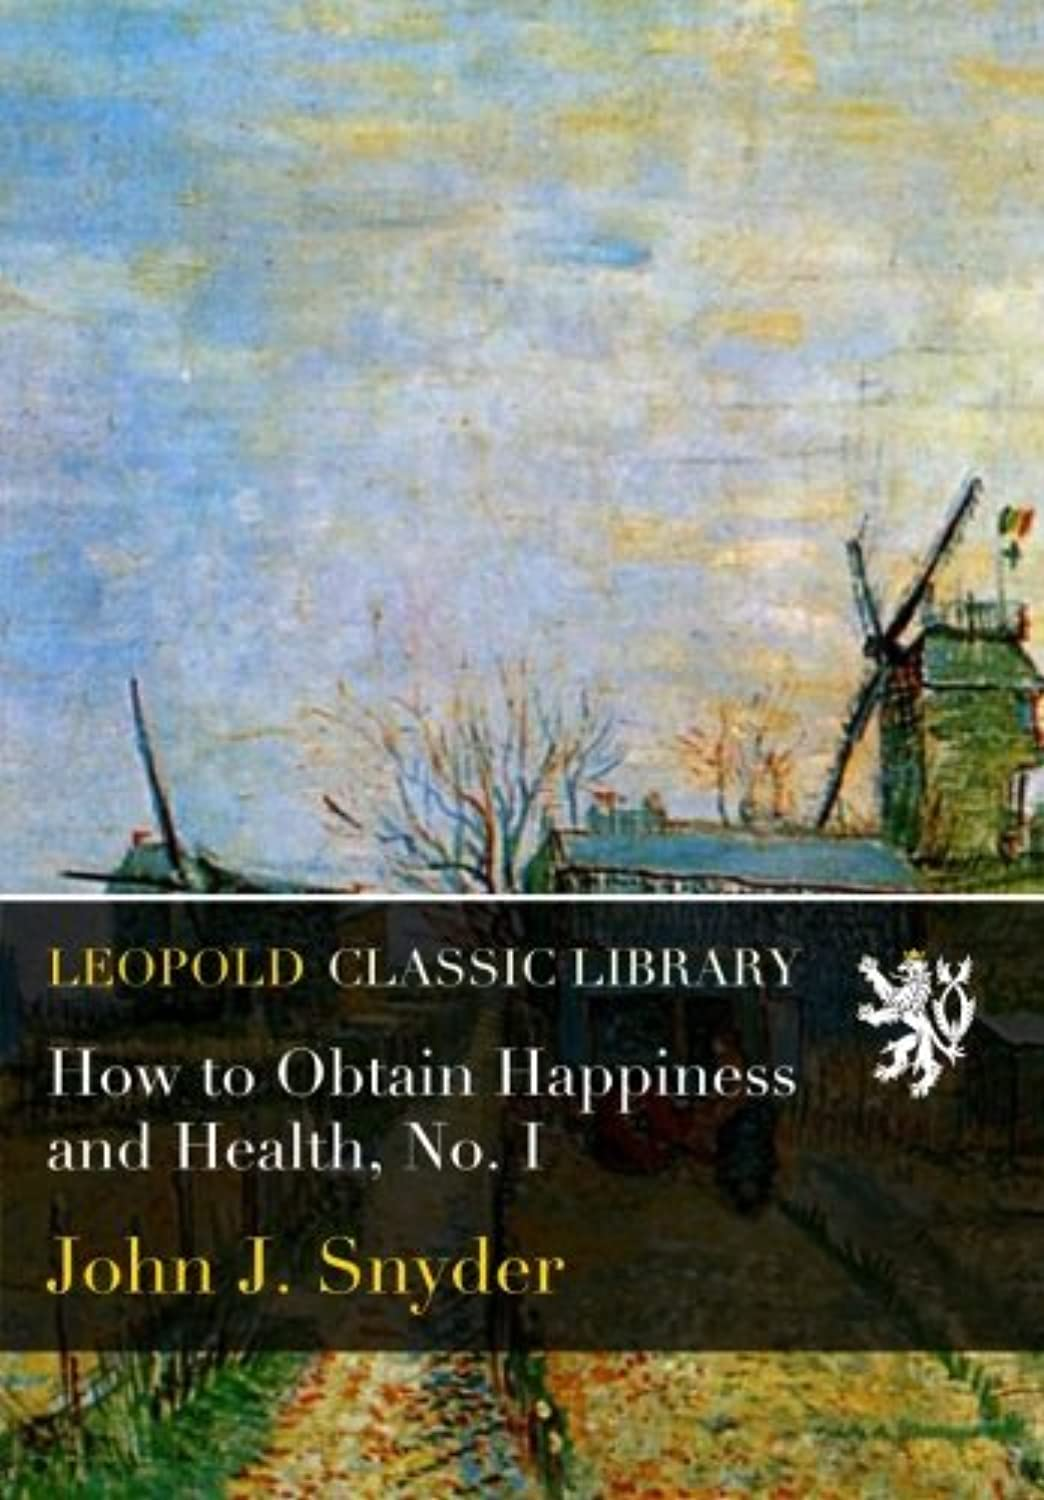 How to Obtain Happiness and Health, No. I